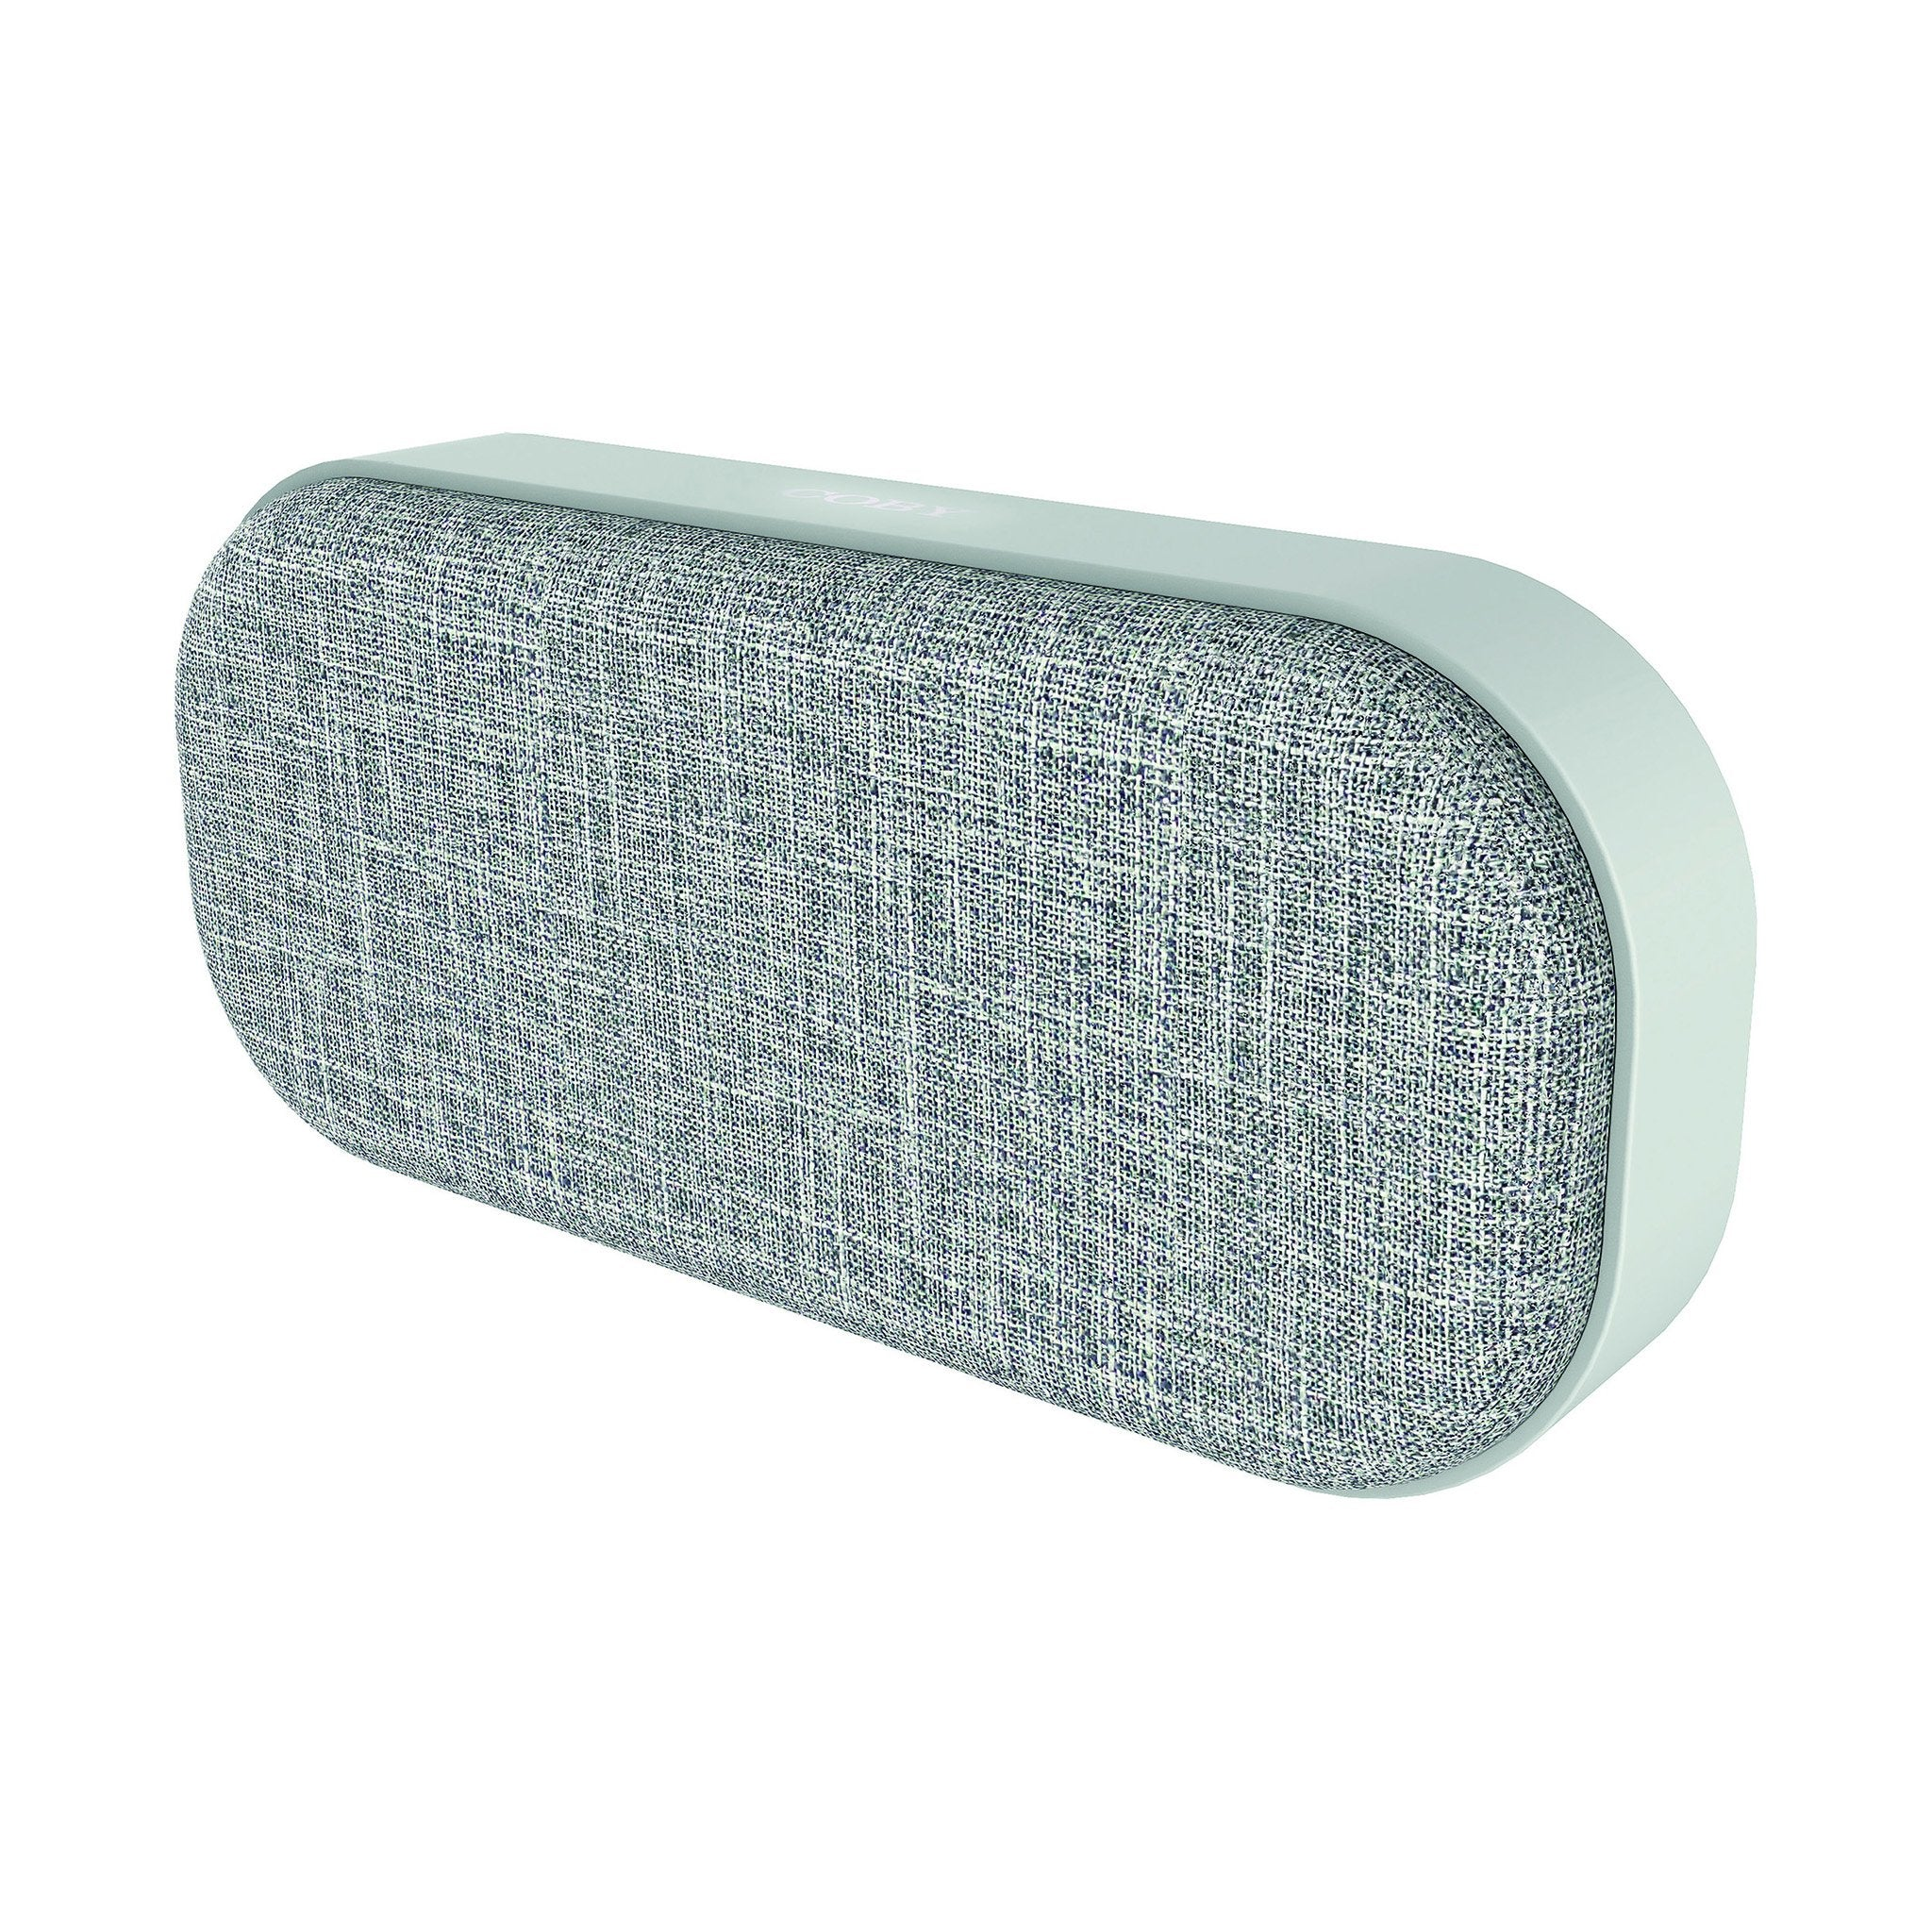 Image of Coby Decor Wireless Bluetooth Speaker